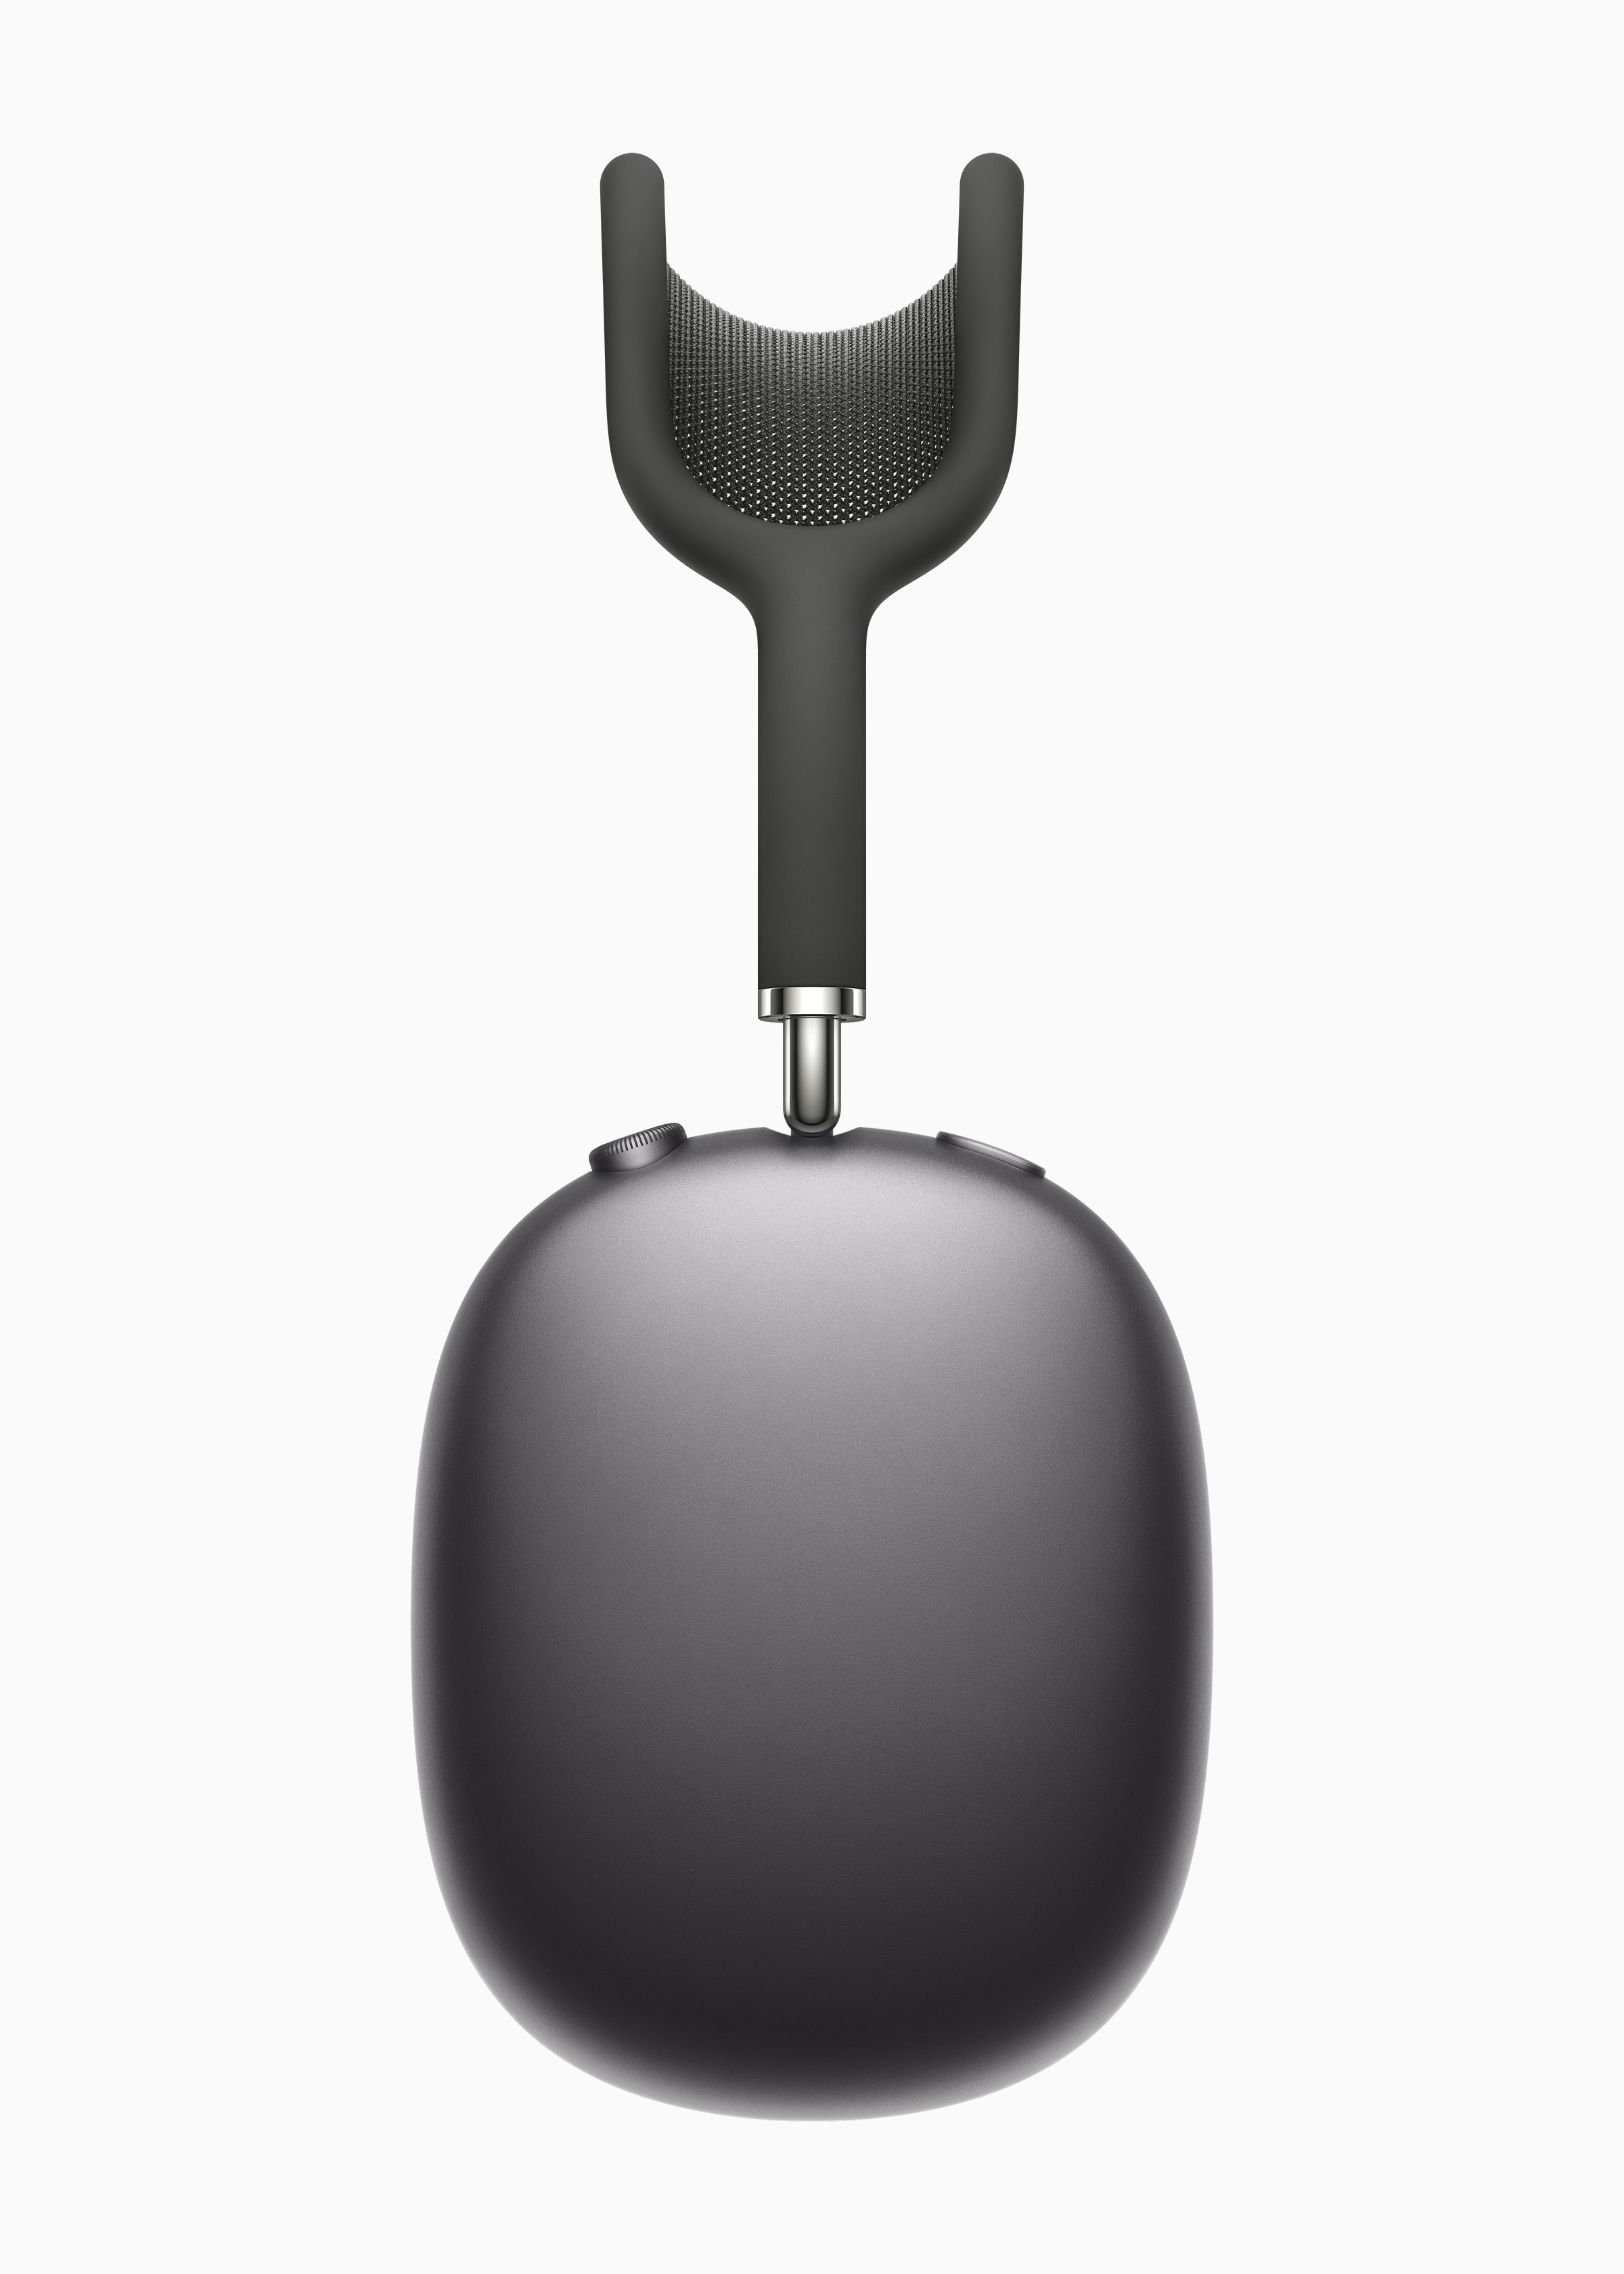 apple_airpods-max_color-black_12082020